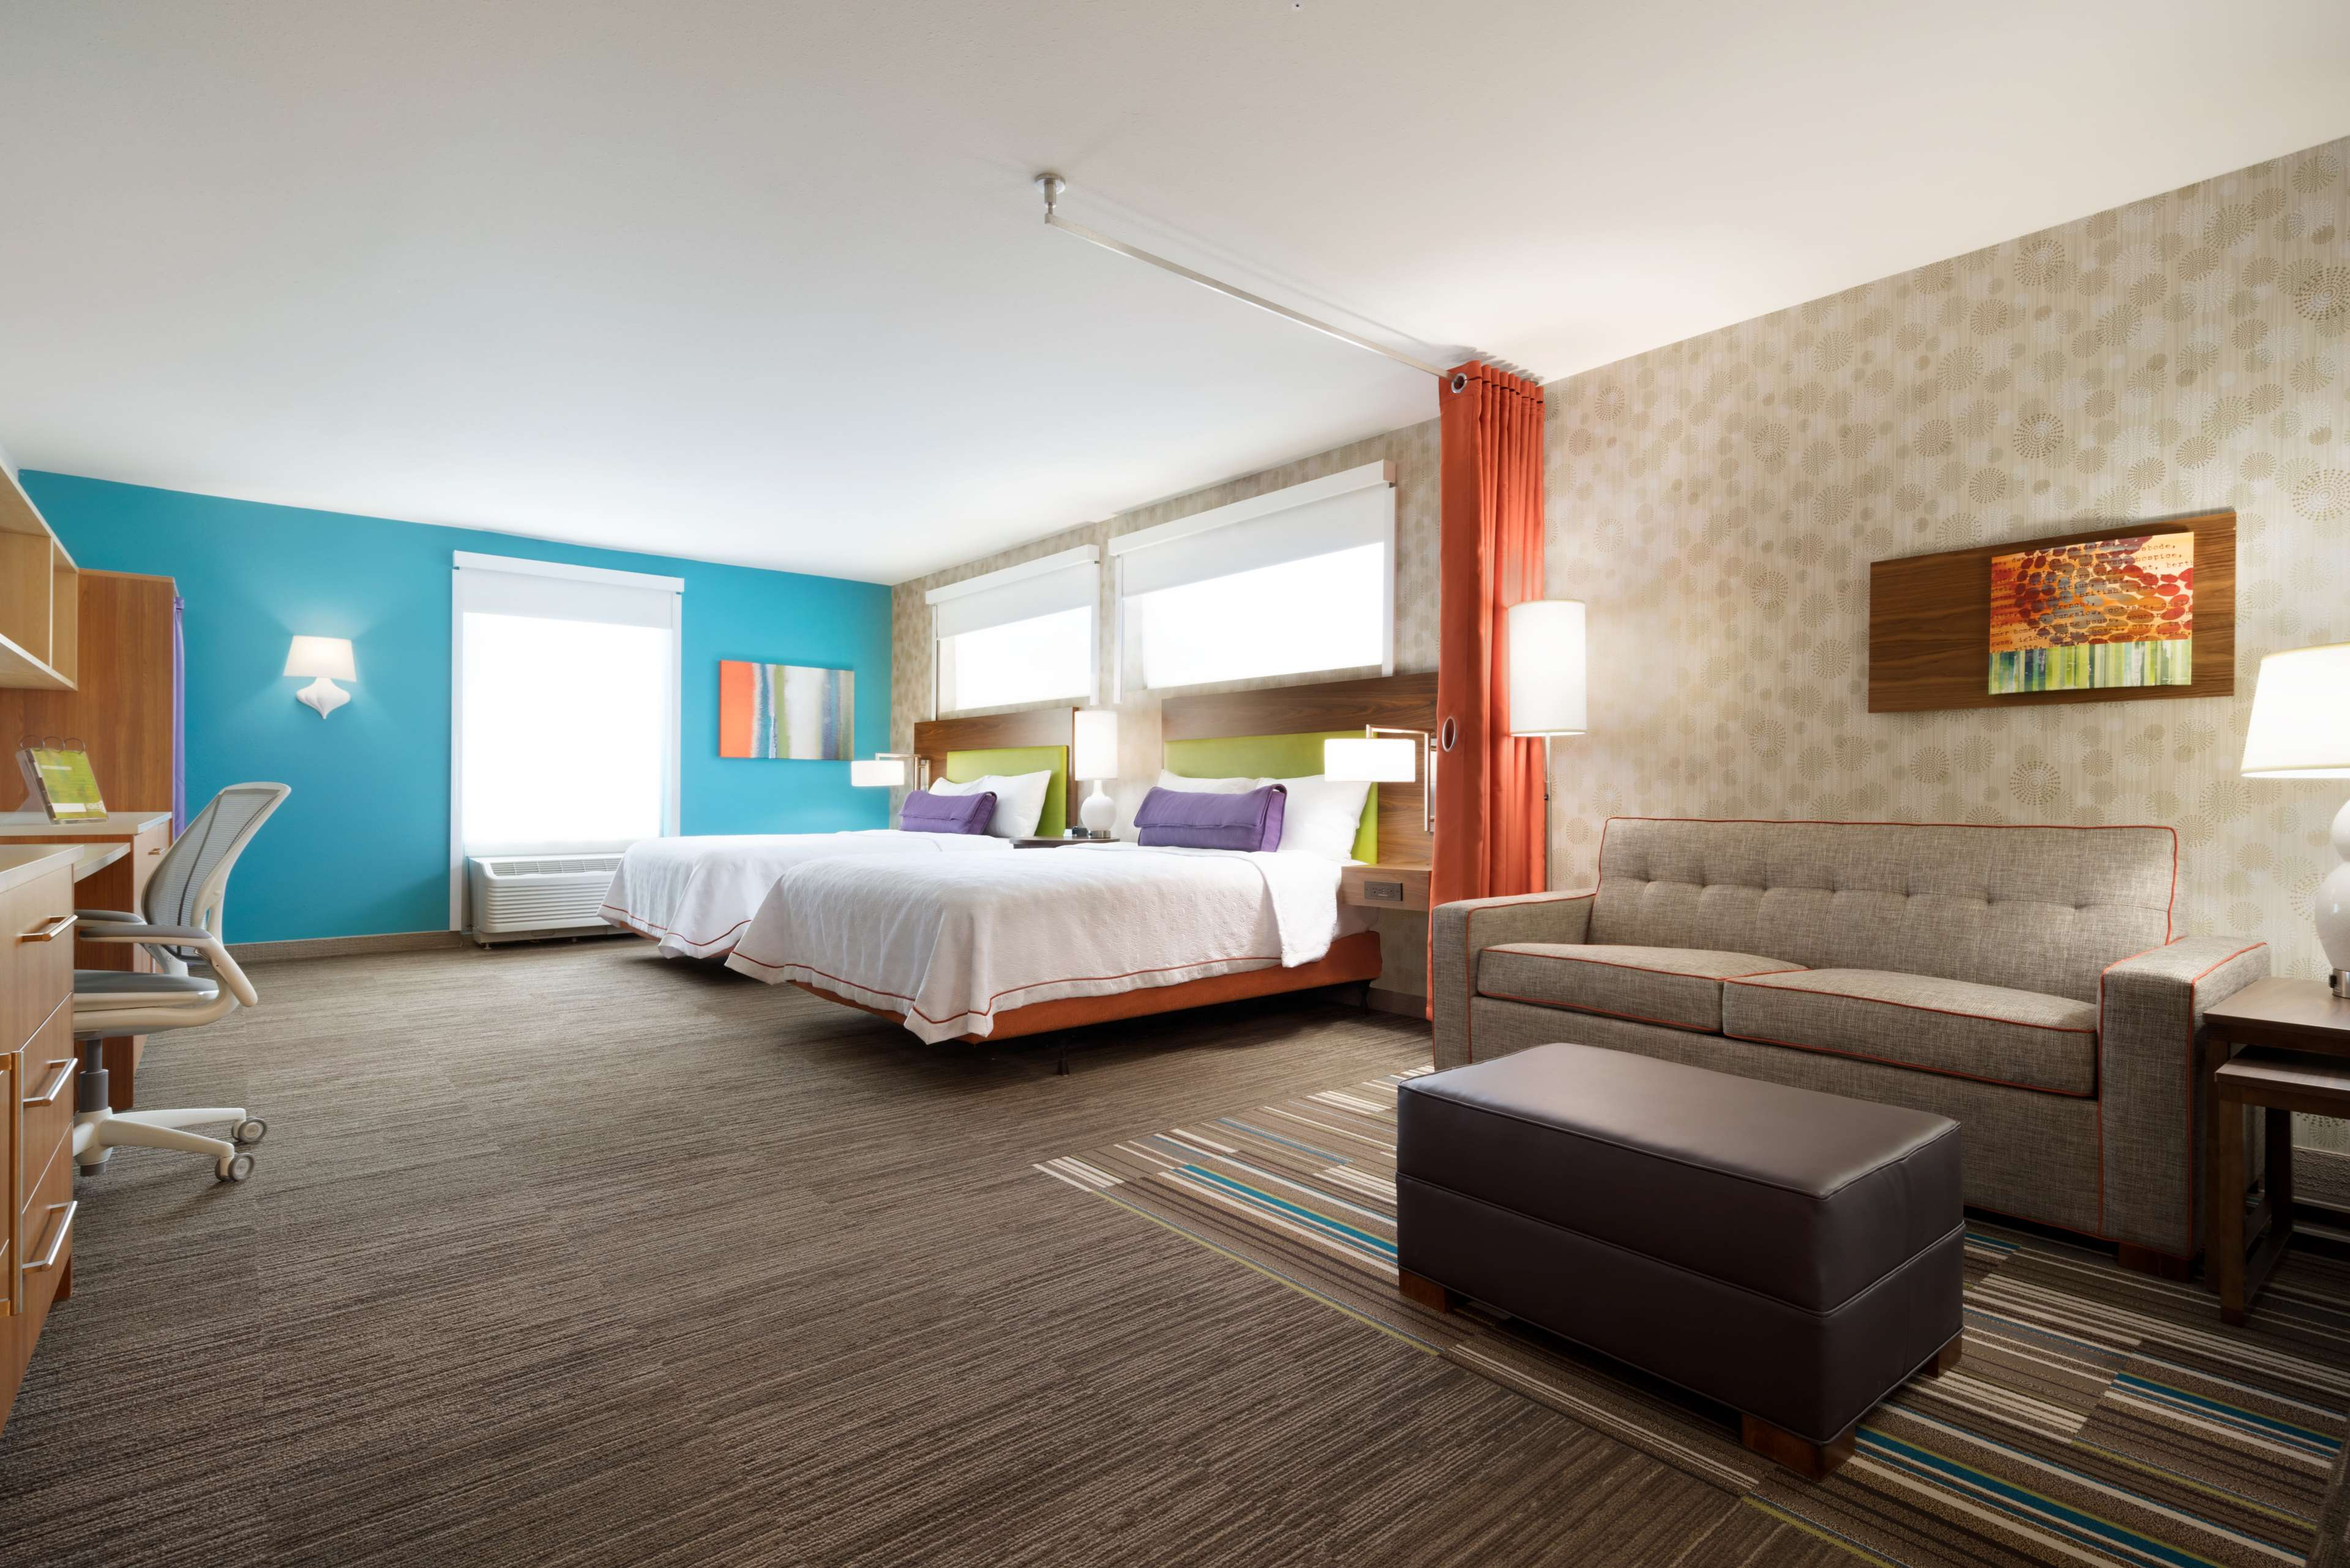 Home2 Suites by Hilton Roanoke image 30